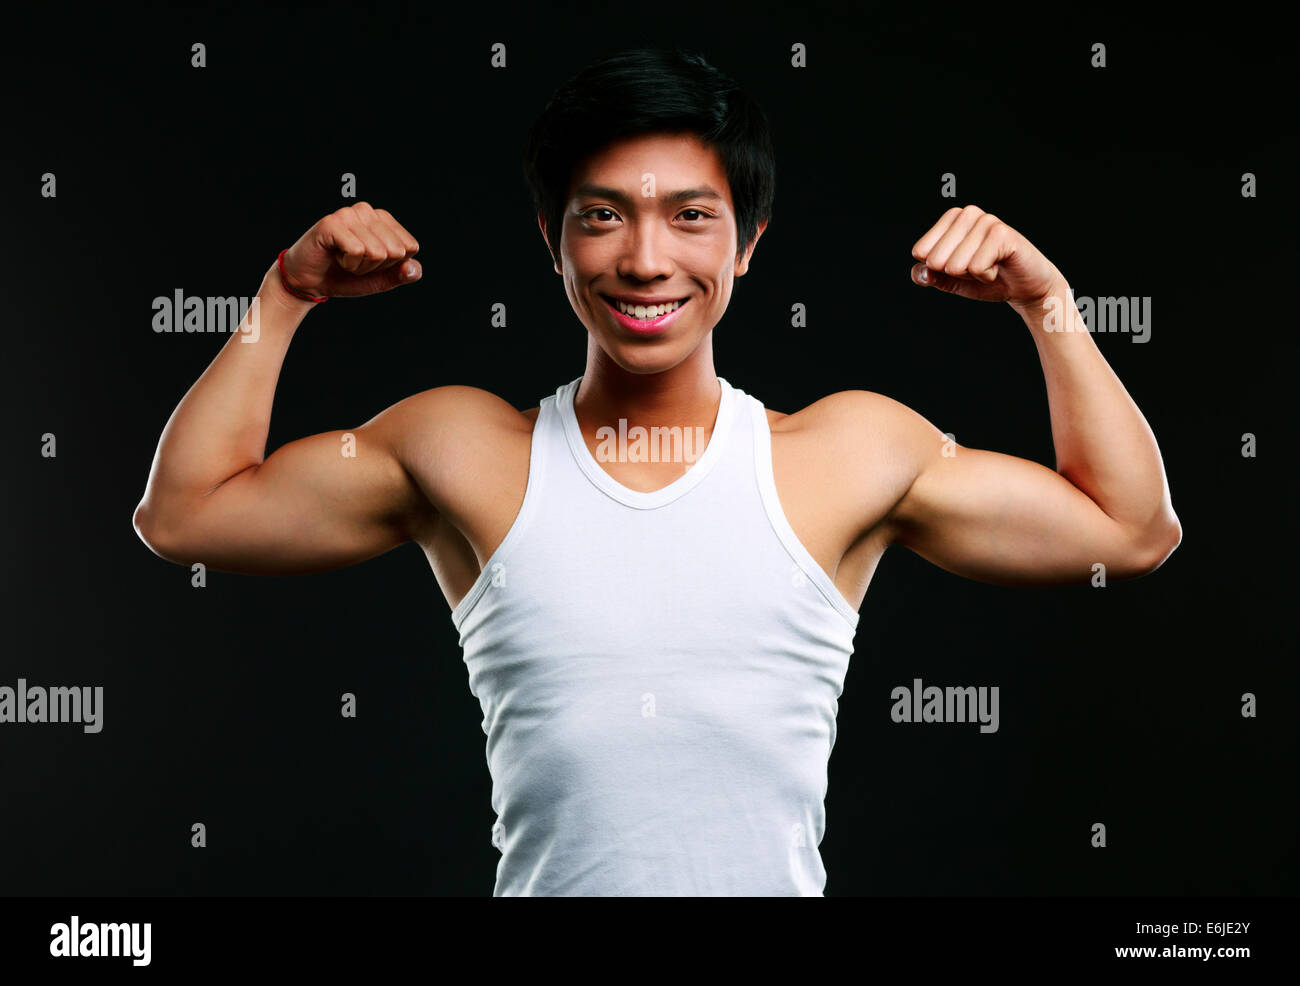 Smiling asian muscular man with arms stretched out on black background Stock Photo